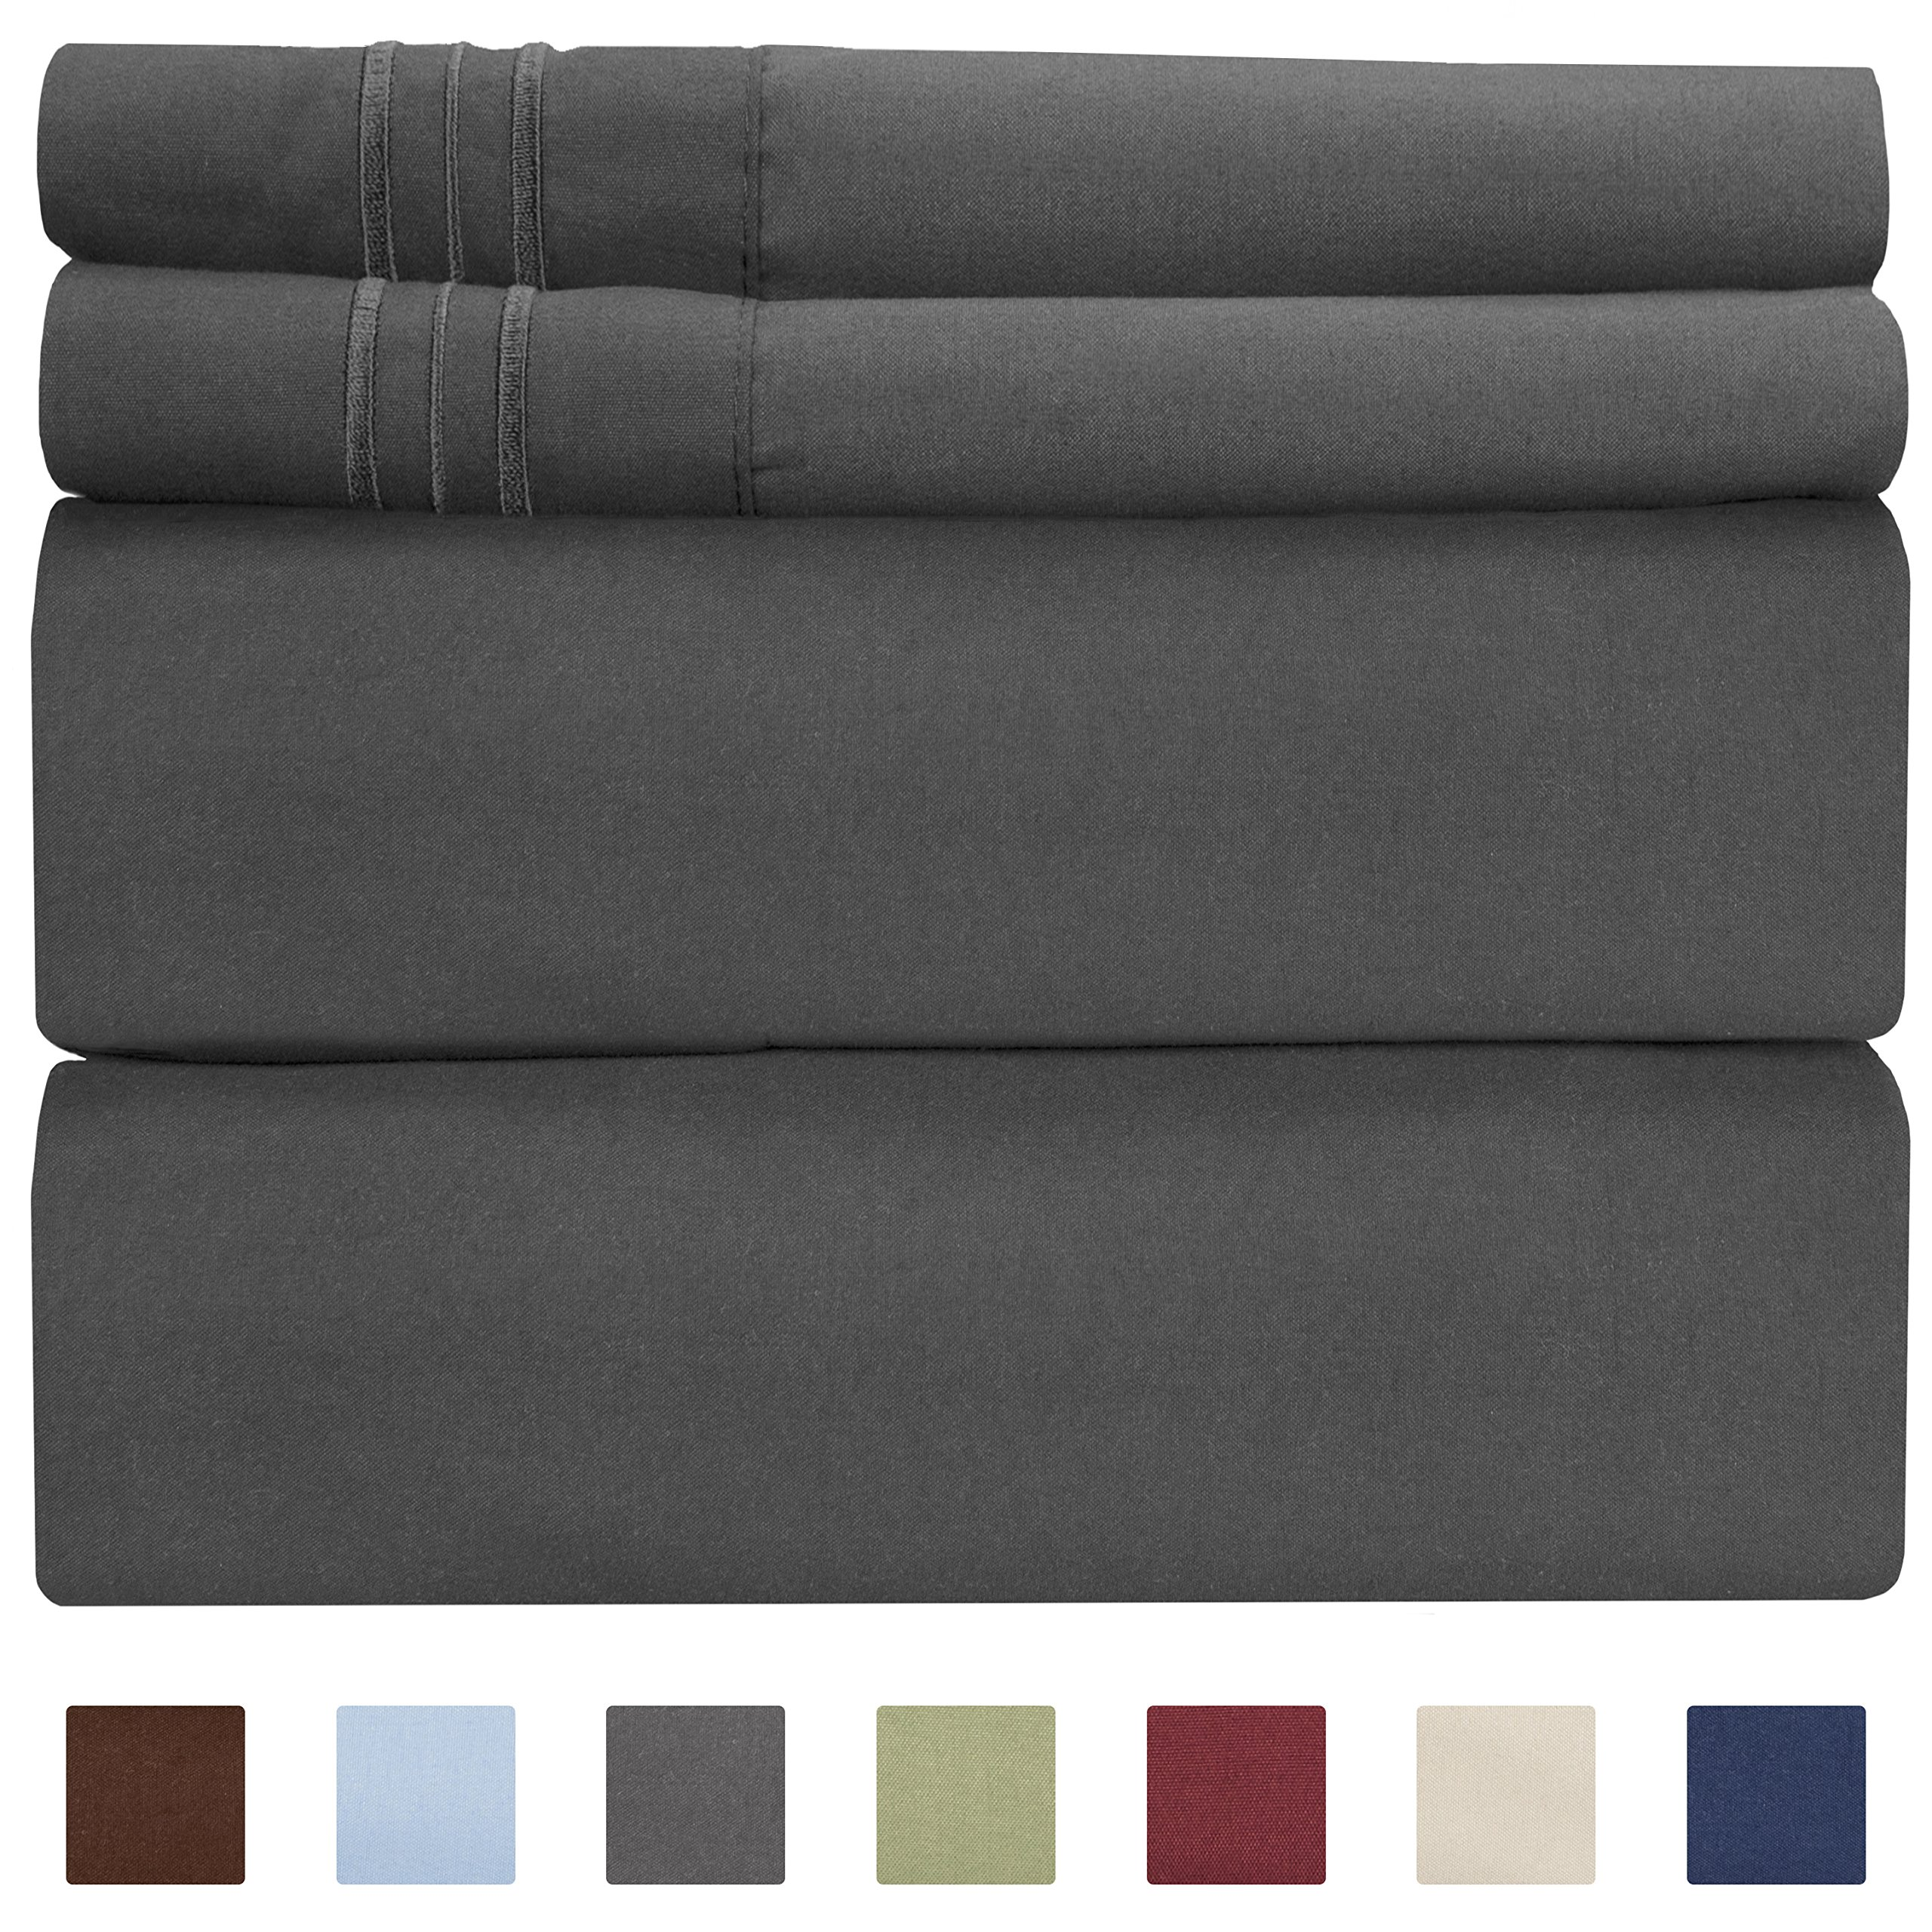 Queen Size Sheet Set Breathable